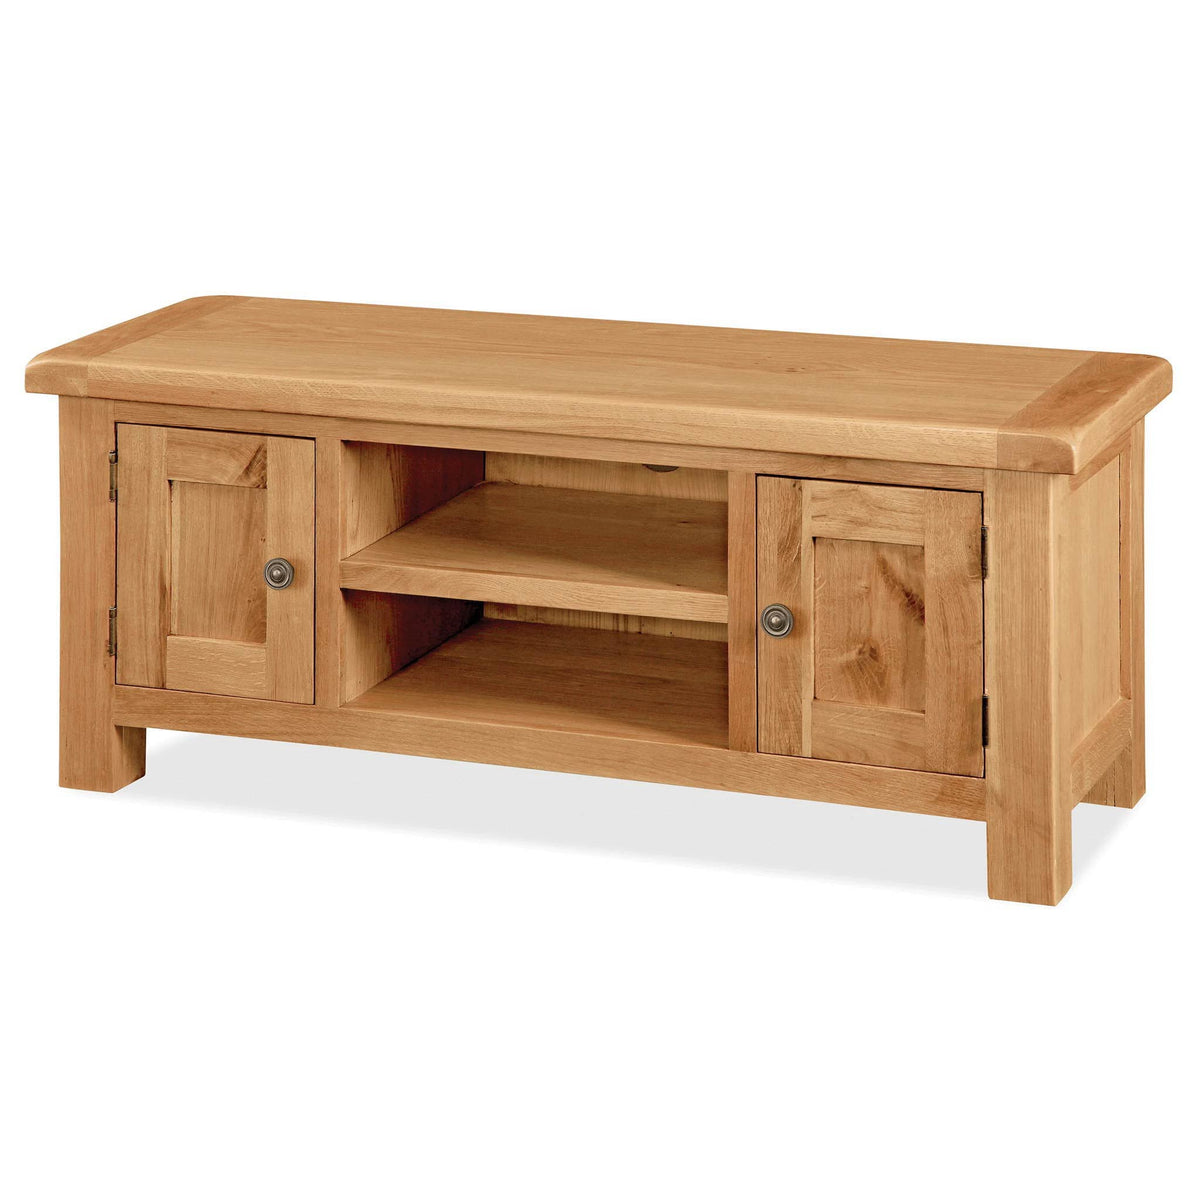 Sidmouth Oak 120cm TV Stand